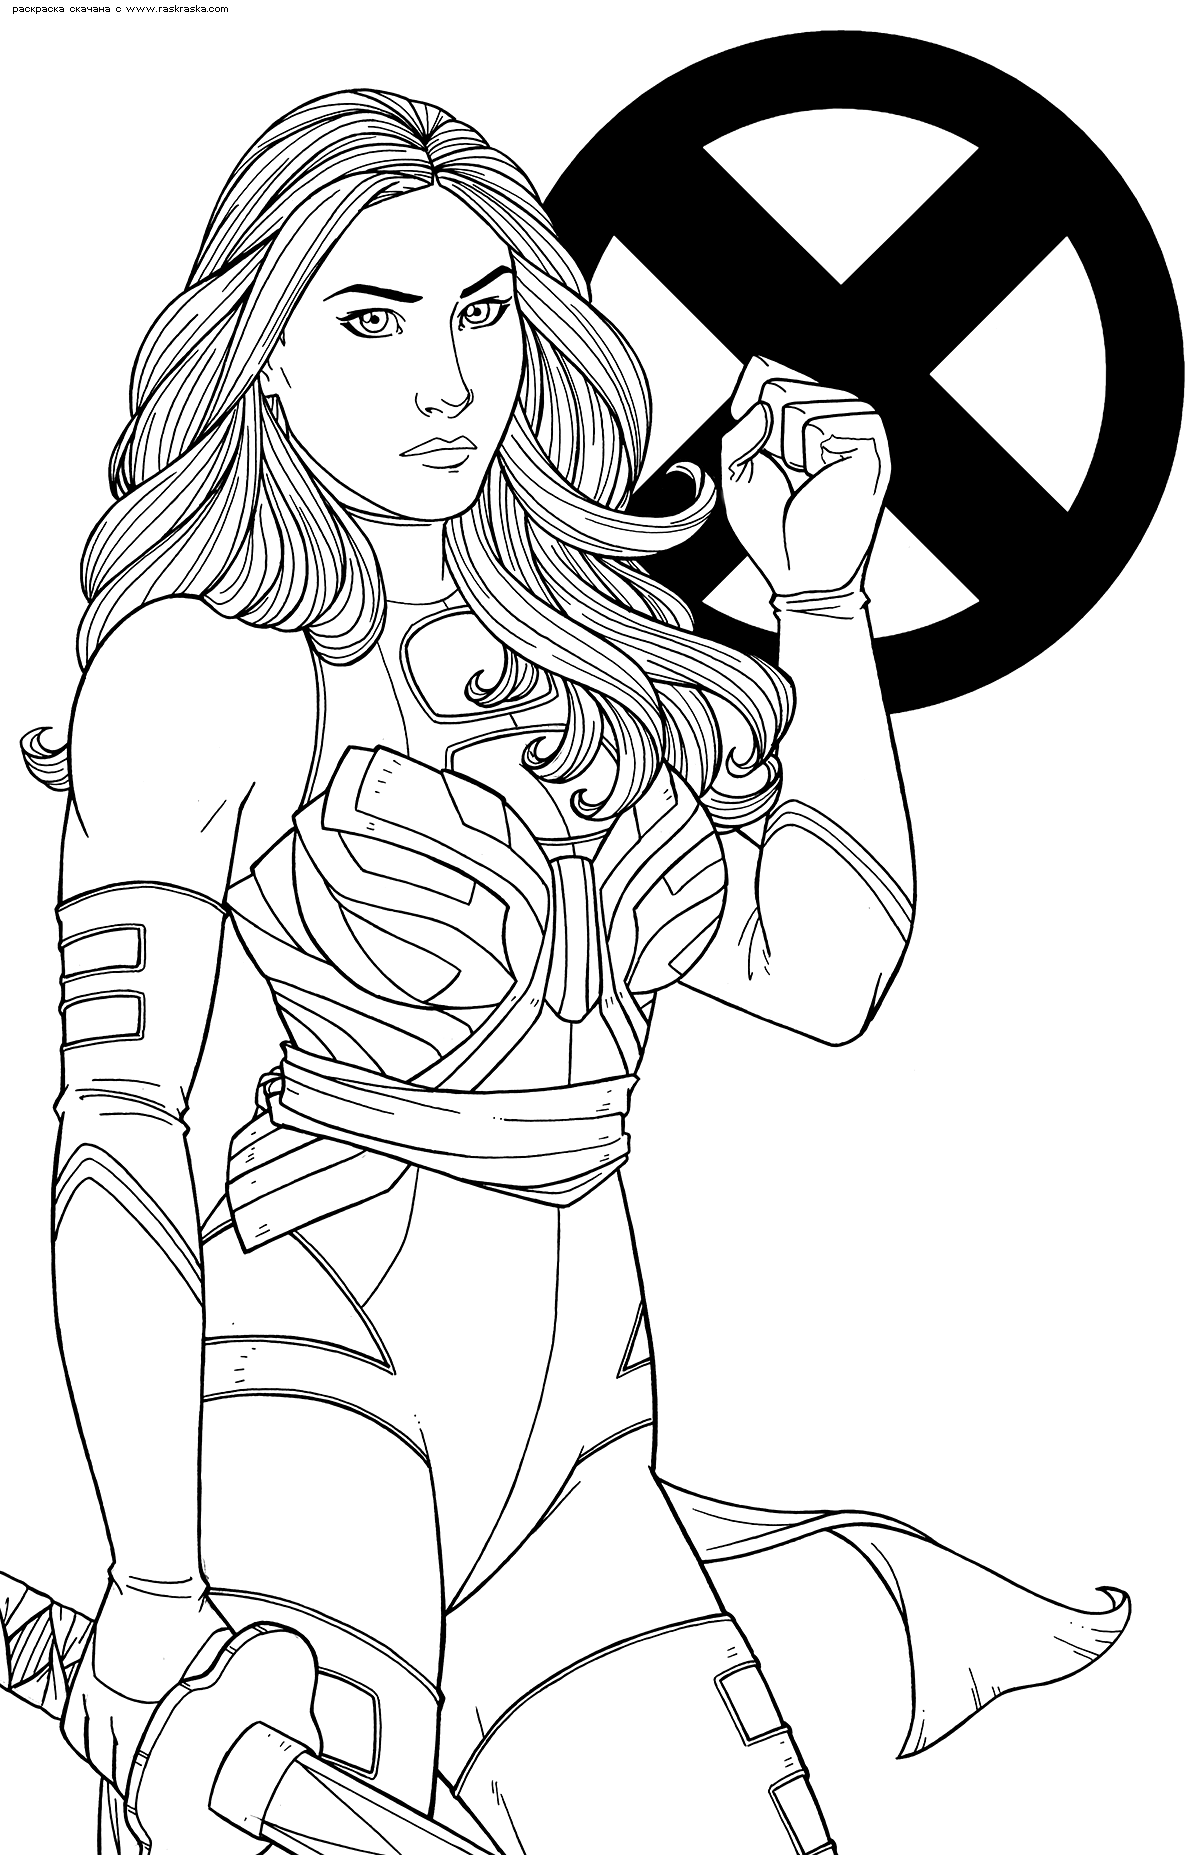 Superhero Coloring Pages Raskraski Supergeroi In 2020 Betsy Braddock Coloring Pages Avengers Coloring